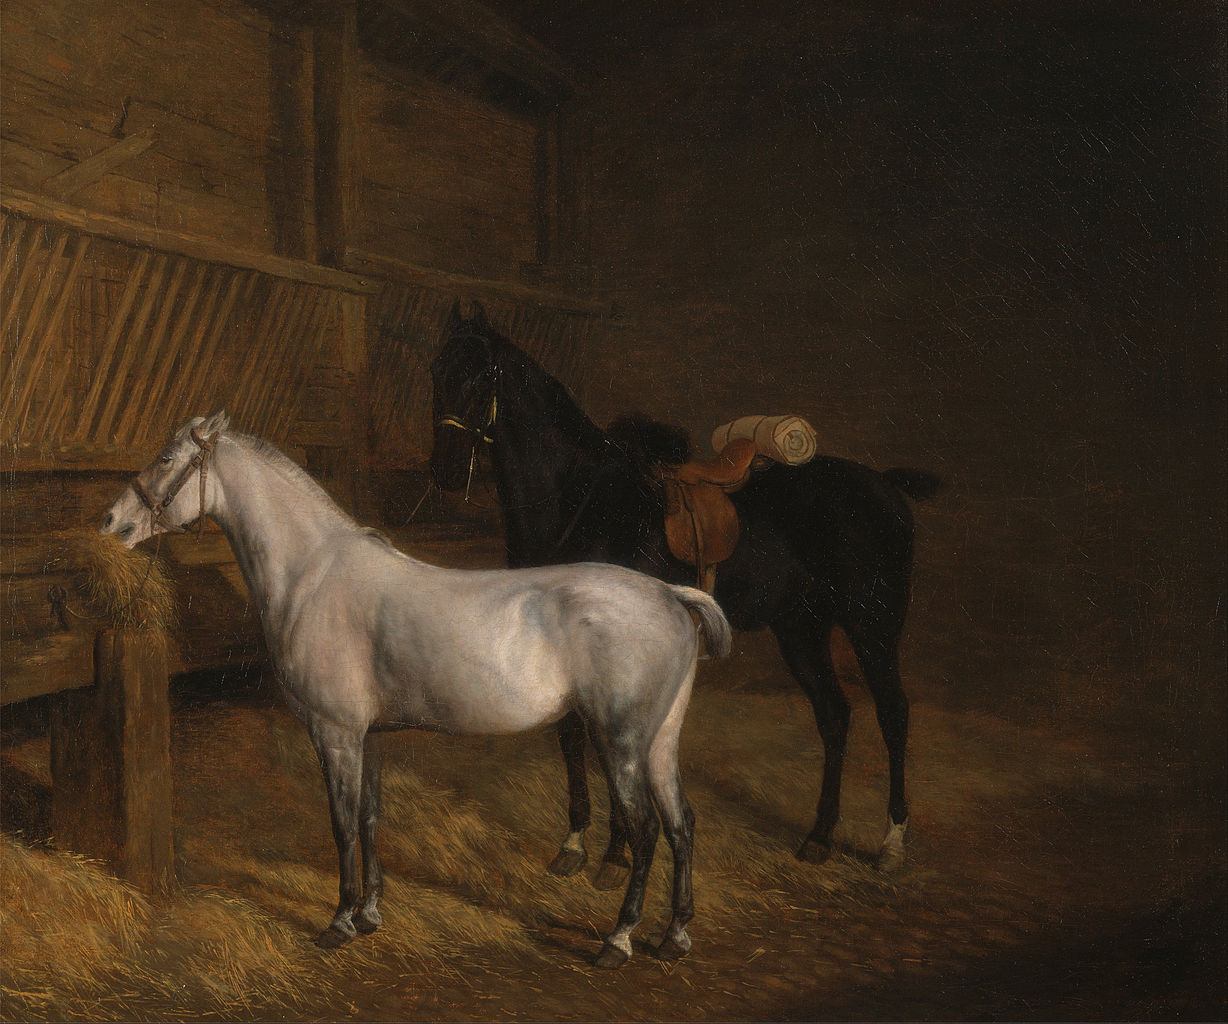 一匹灰色的小马和一匹黑色的战马在马厩里_A Grey Pony and a Black Charger in a Stable-Jacques-Laurent Agasse